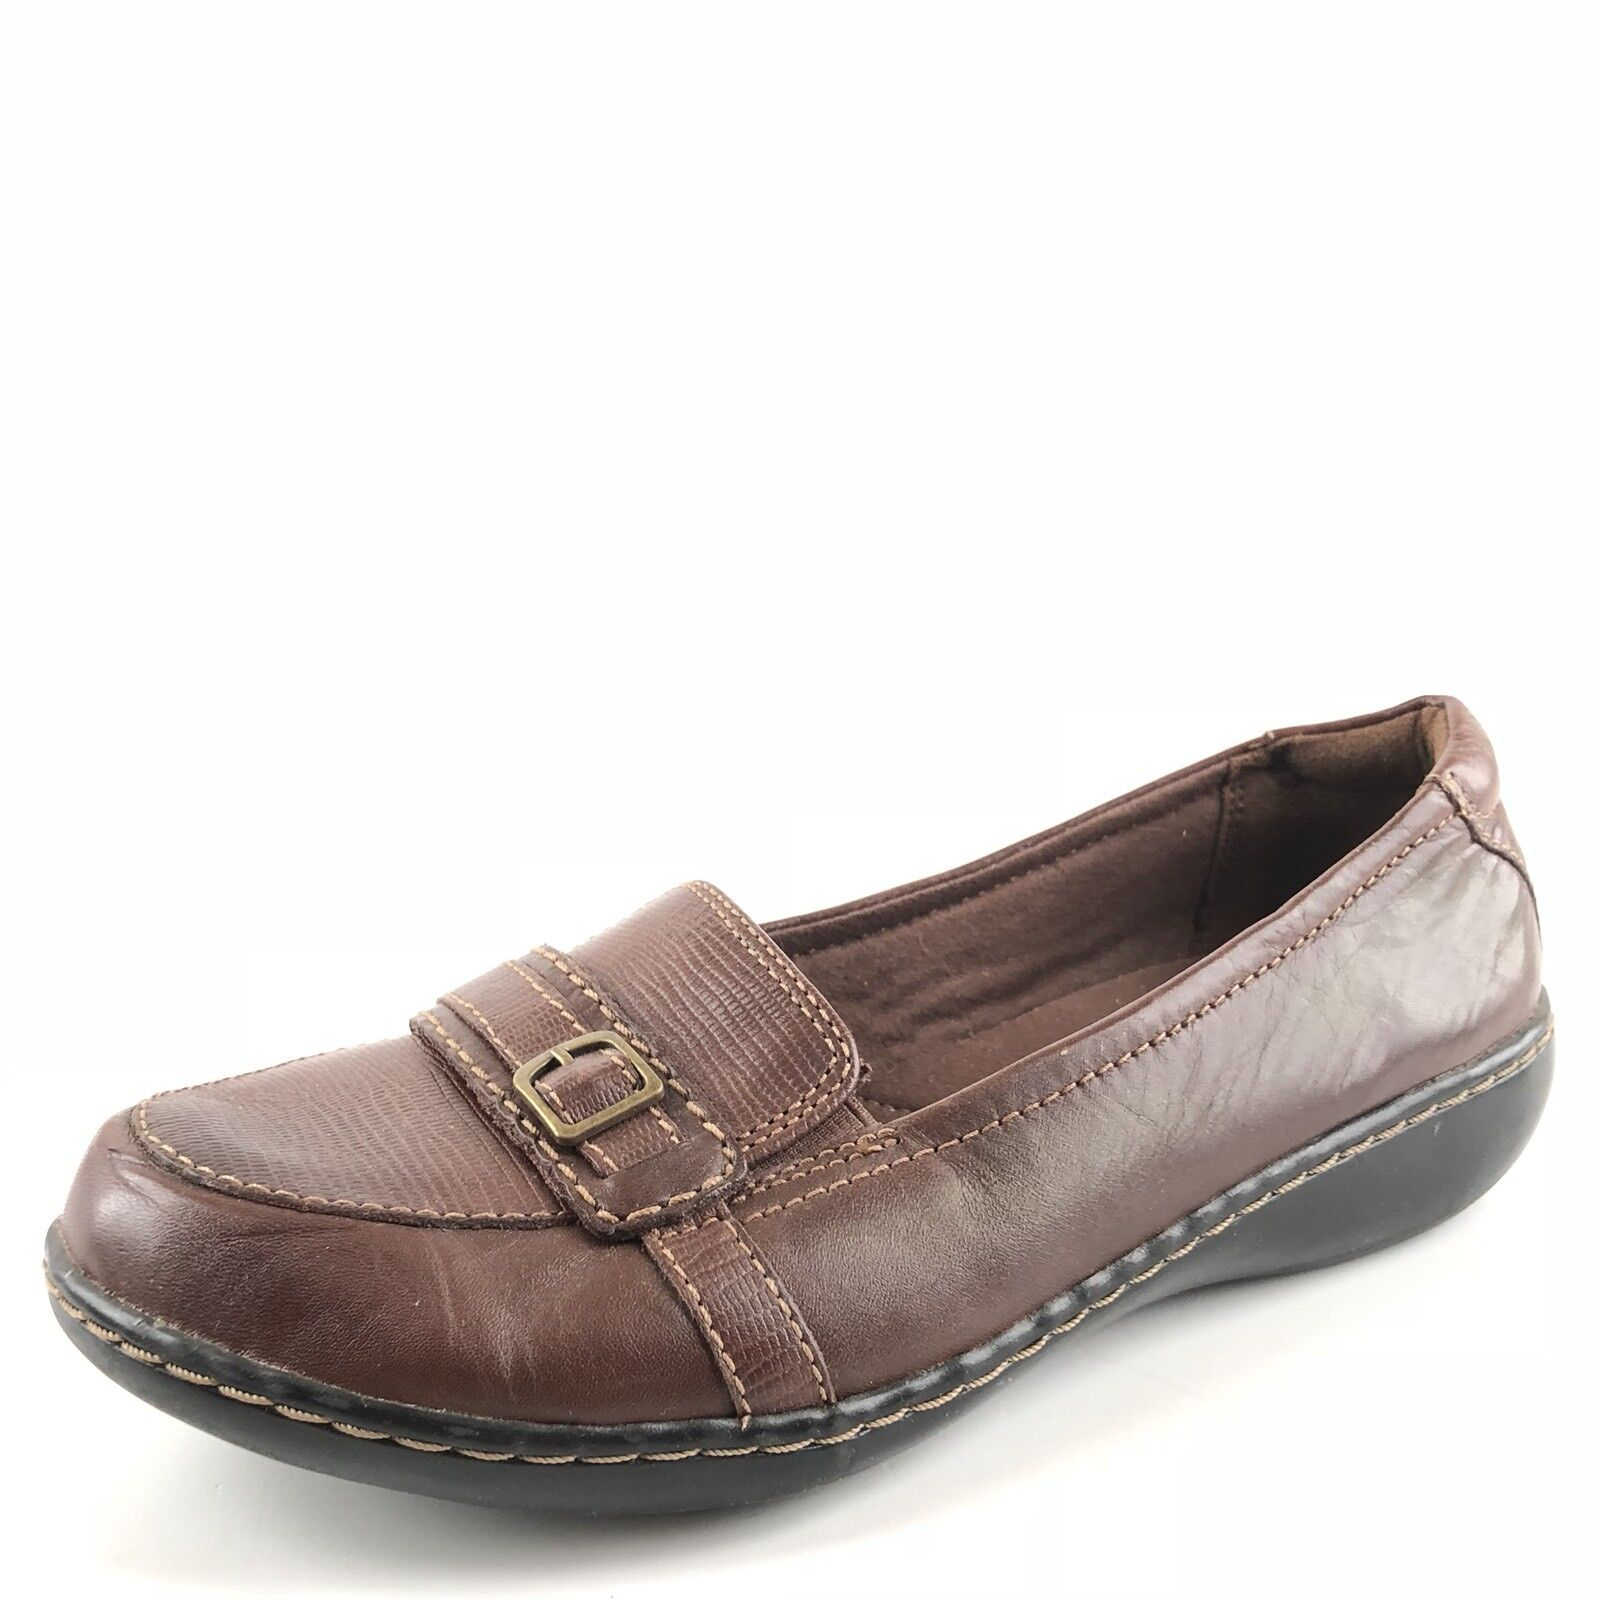 Clarks Artisan marron Leather Wedge Slip On Loafers femmes Taille 9.5 M